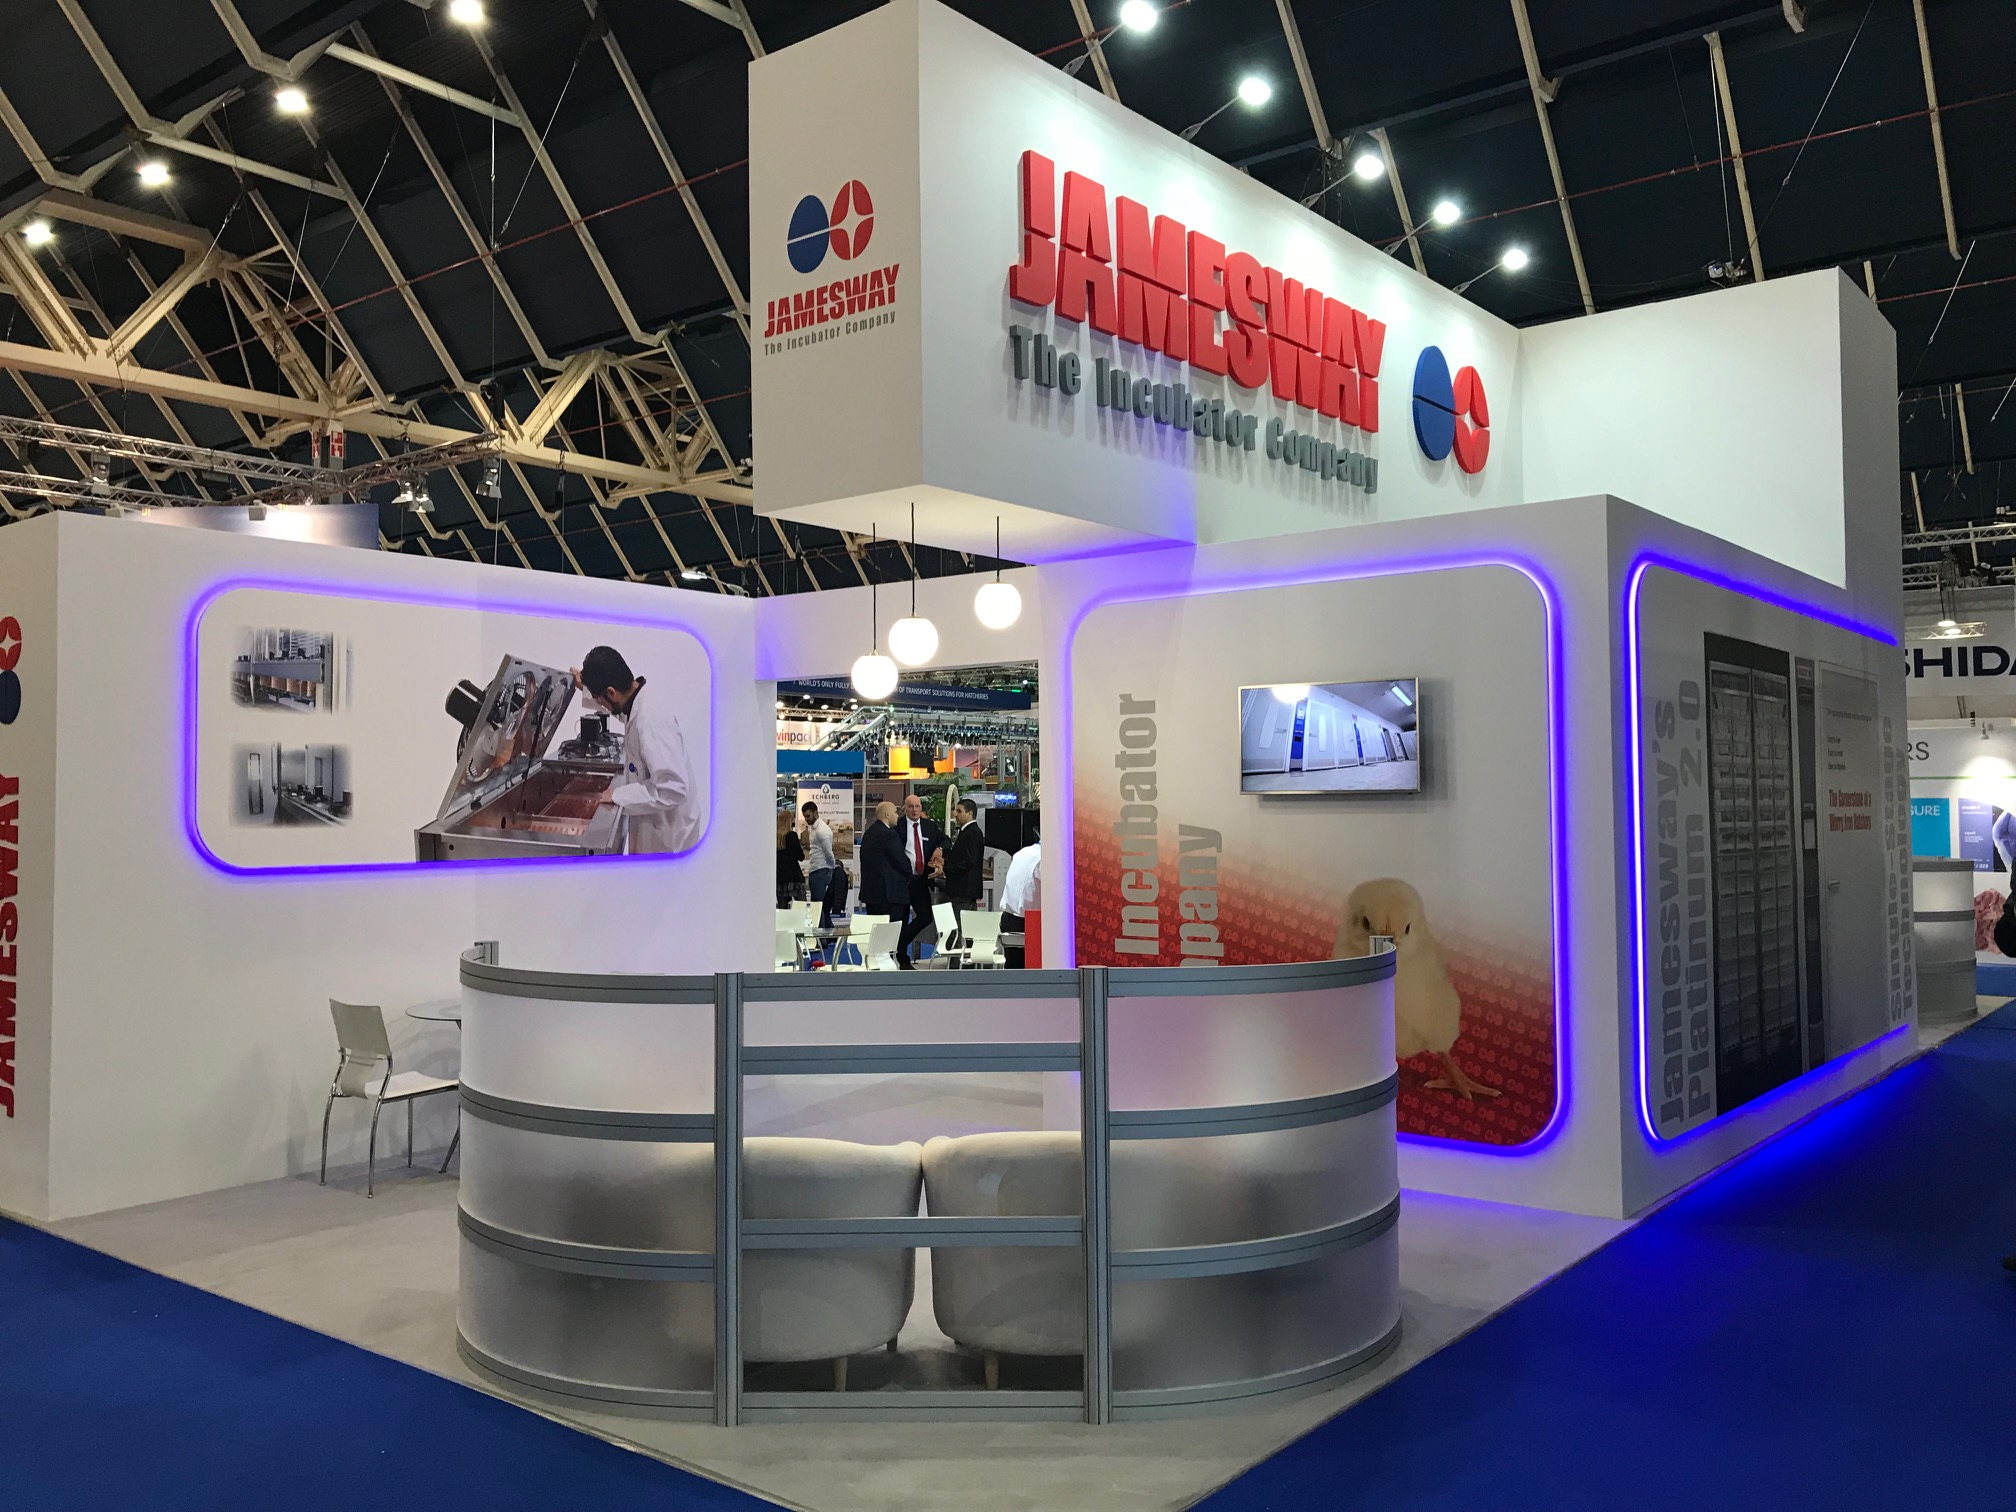 Exhibition booth design and build for Jamesway at VIV Europe Jaarbeurs Utrecht